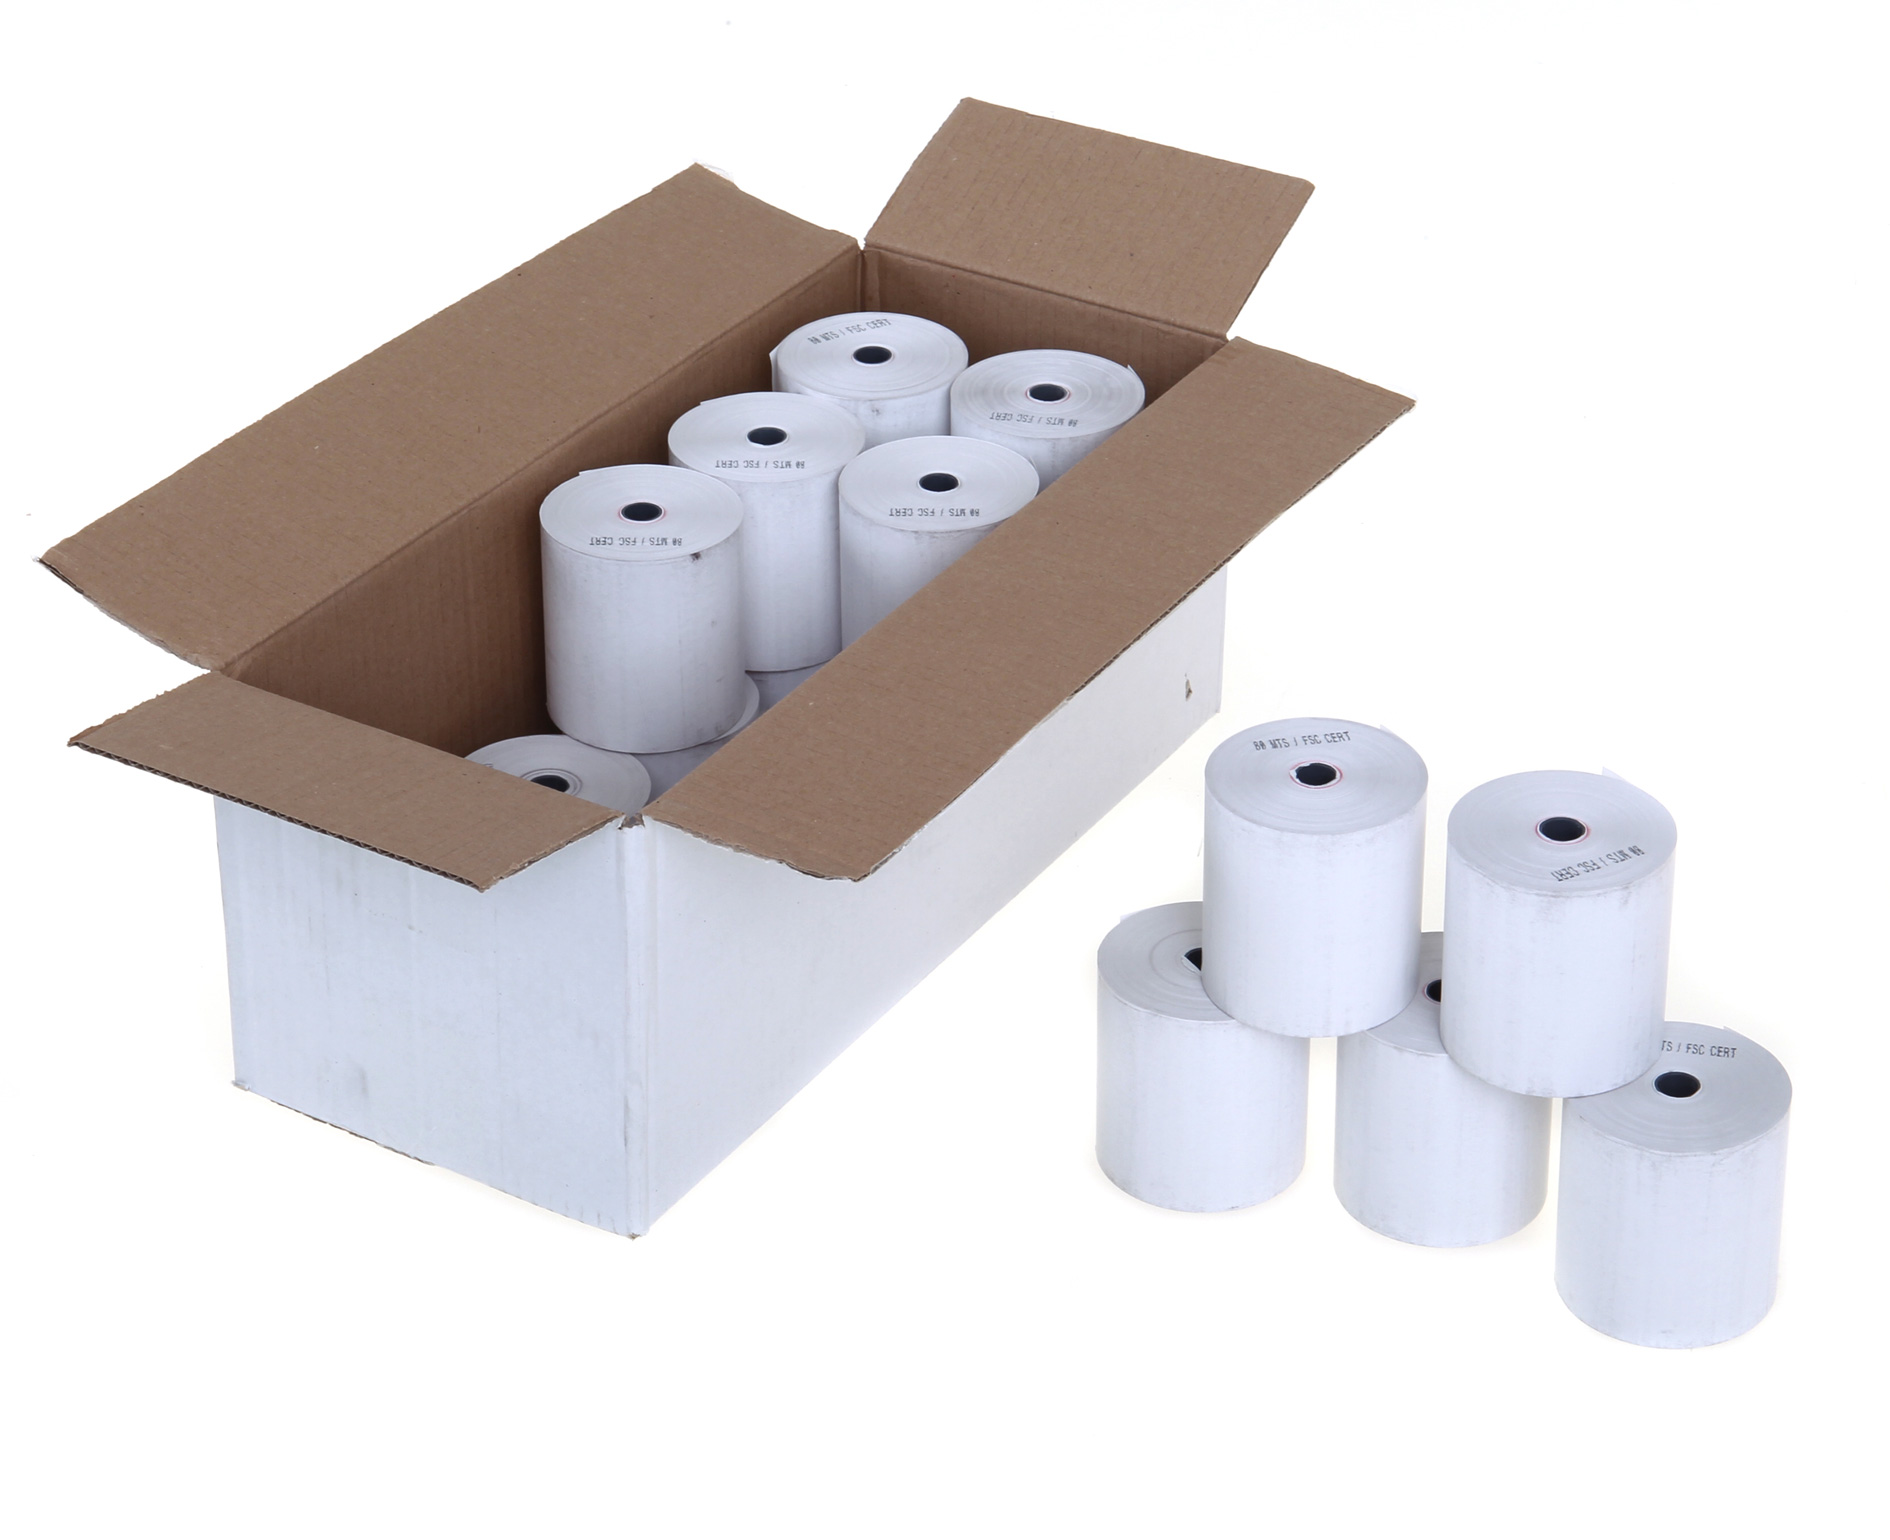 80mm x 70mm x 12.7mm - Thermal Till Rolls  - 20 Rolls per box